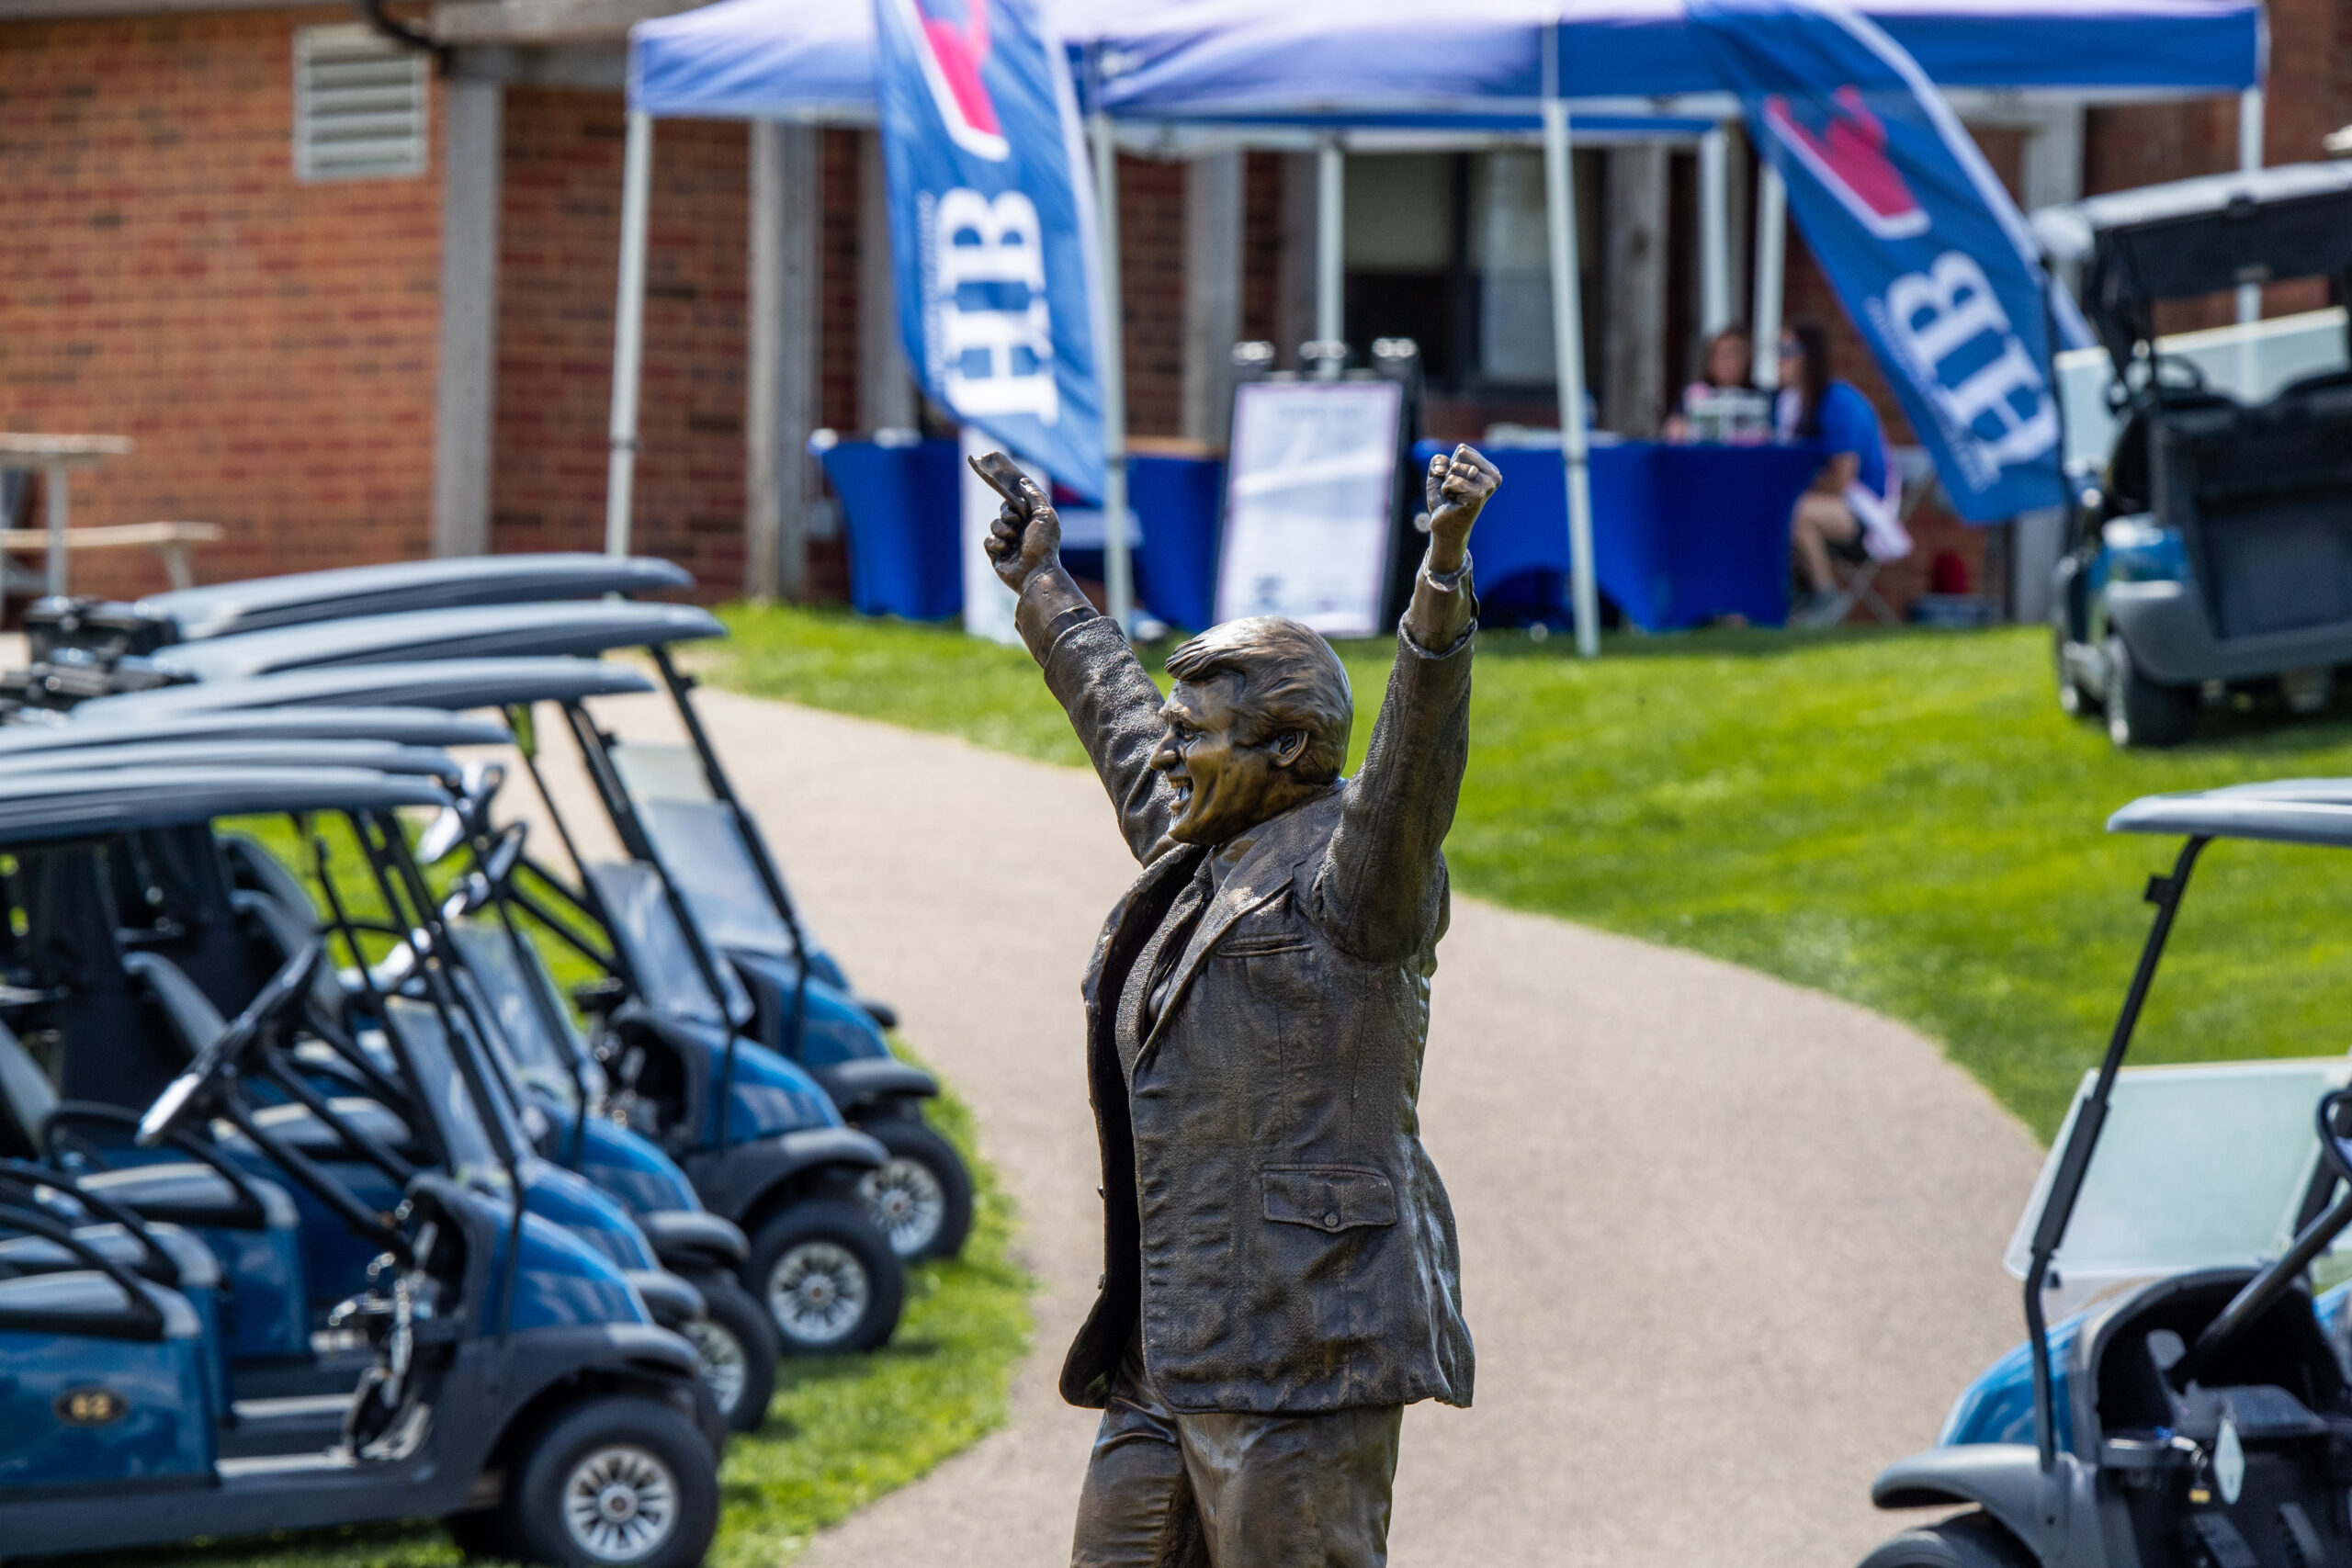 The Herb Brooks statue stood outside of Victory Links, welcoming participants to the Herb Brooks Foundation Golf Classic.